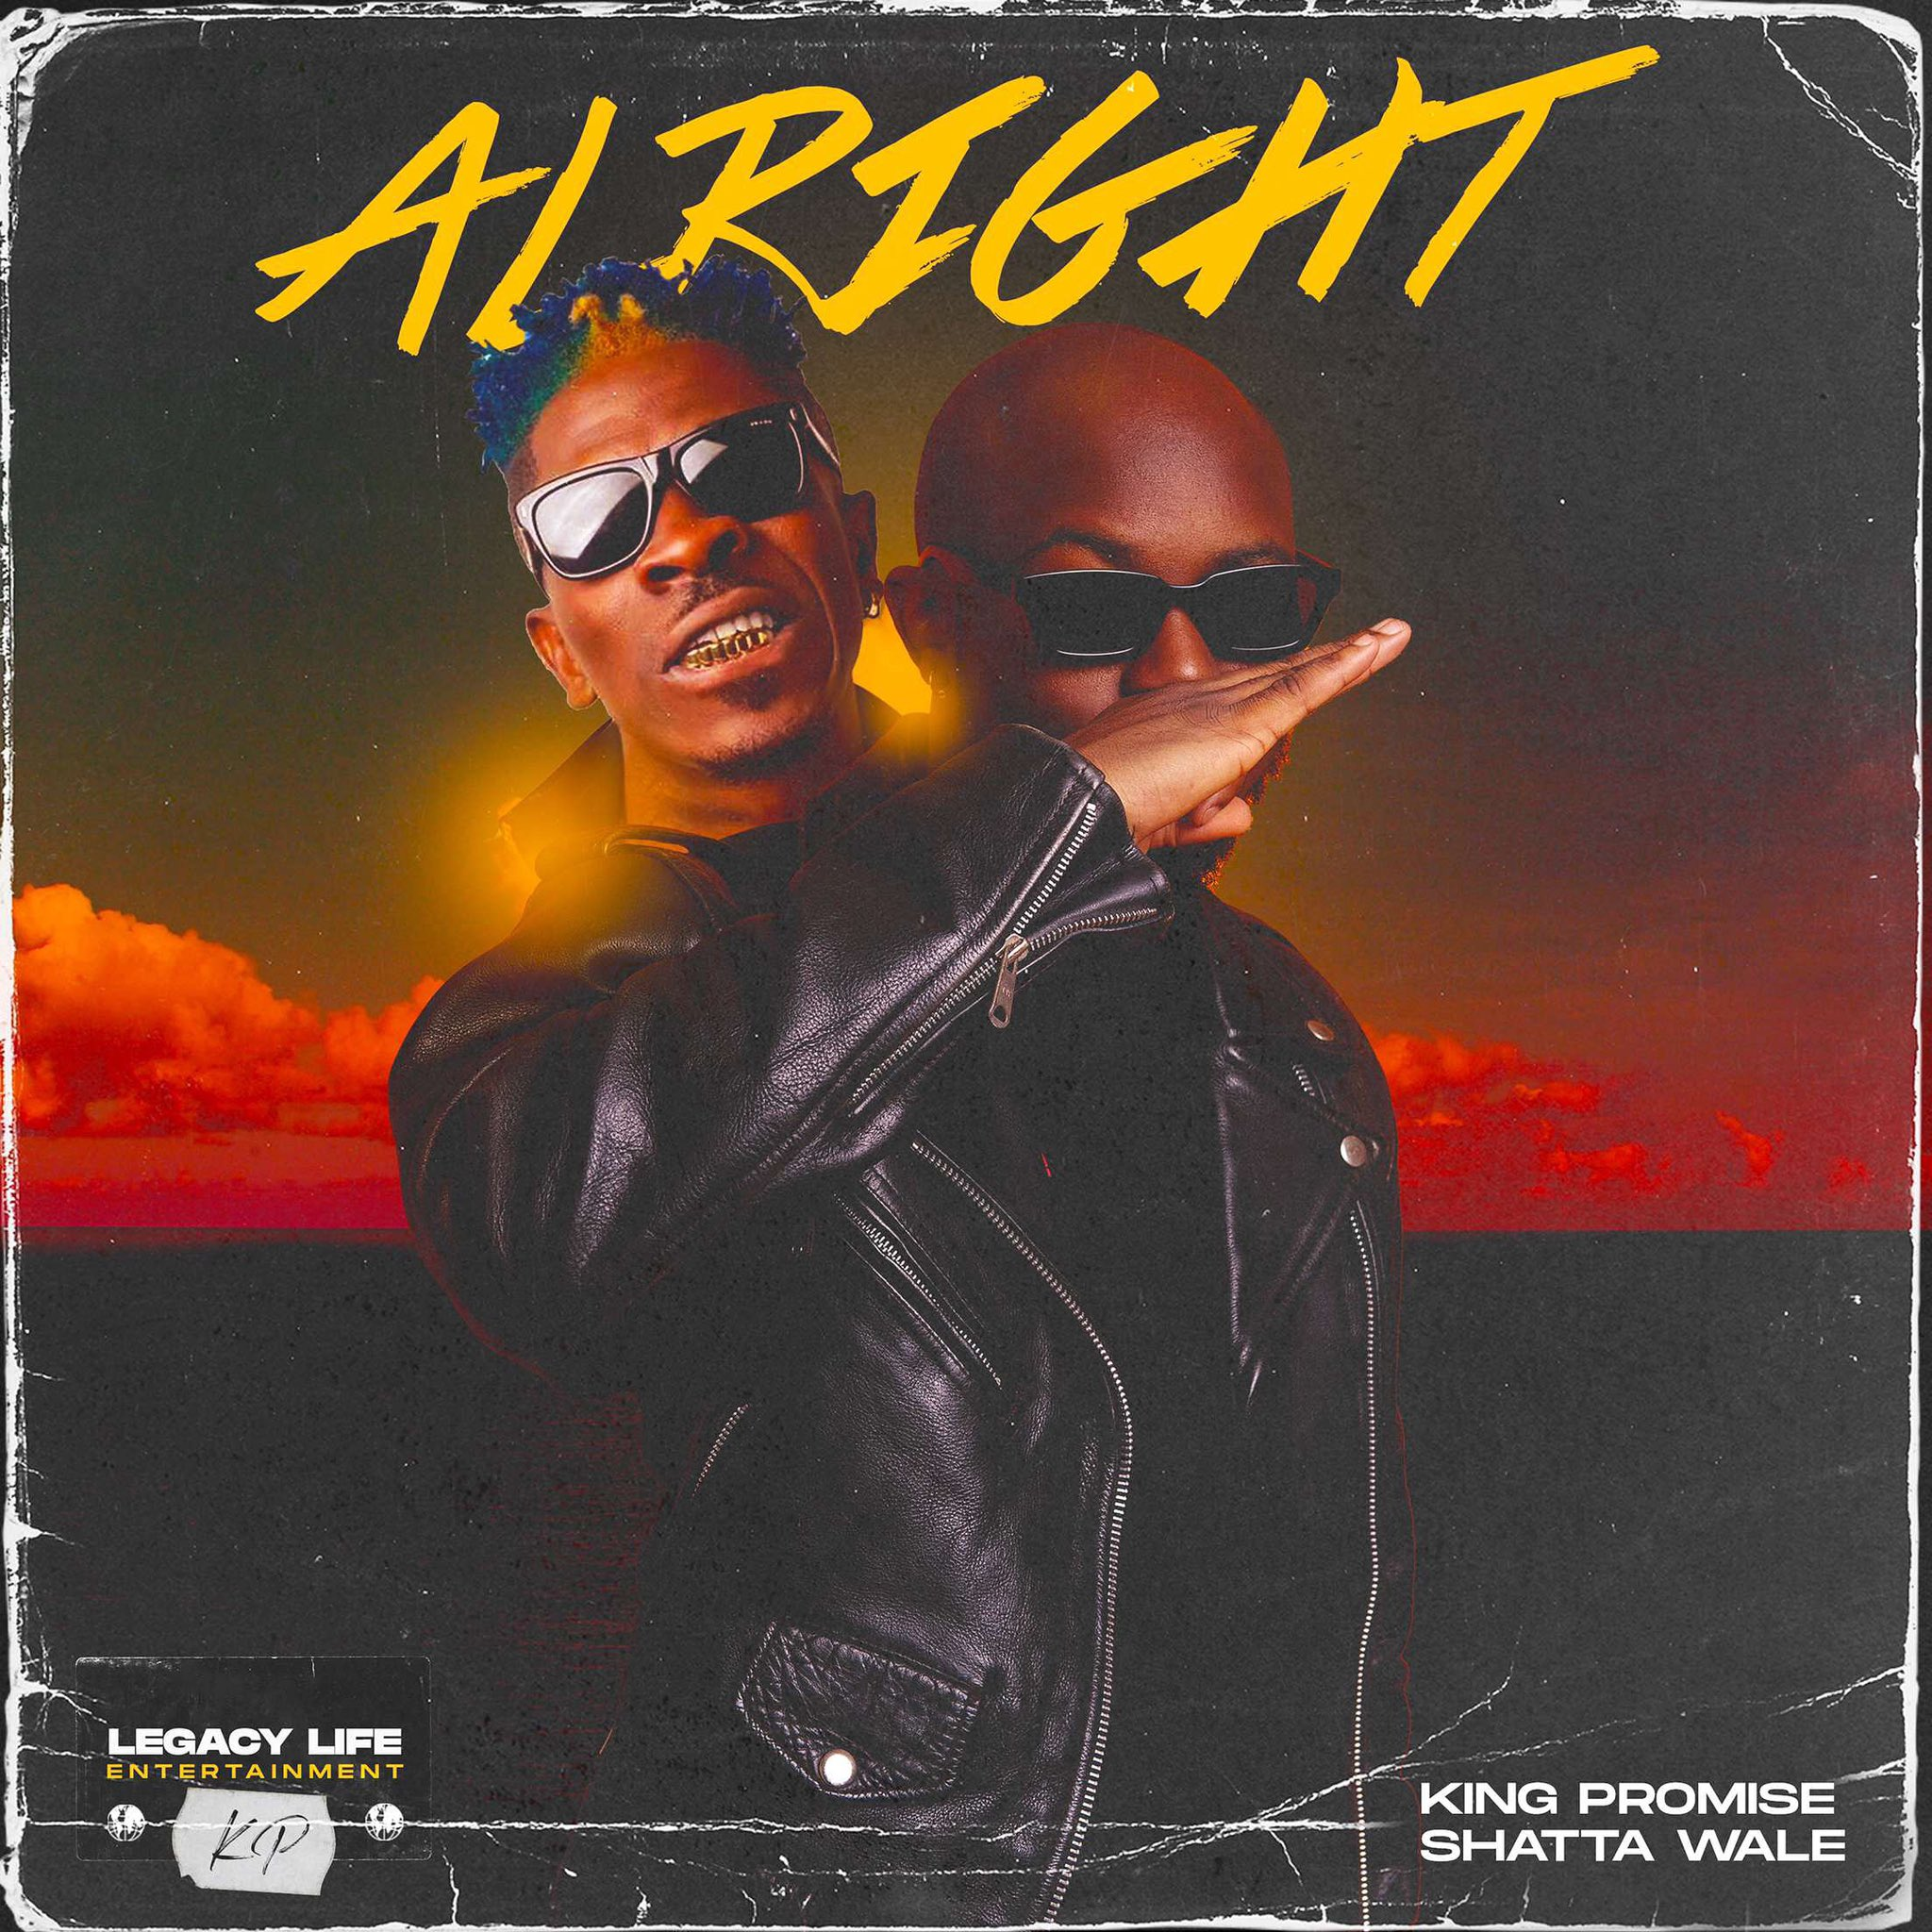 King Promise Teams Up With Shatta Wale On New Song 'Alright'